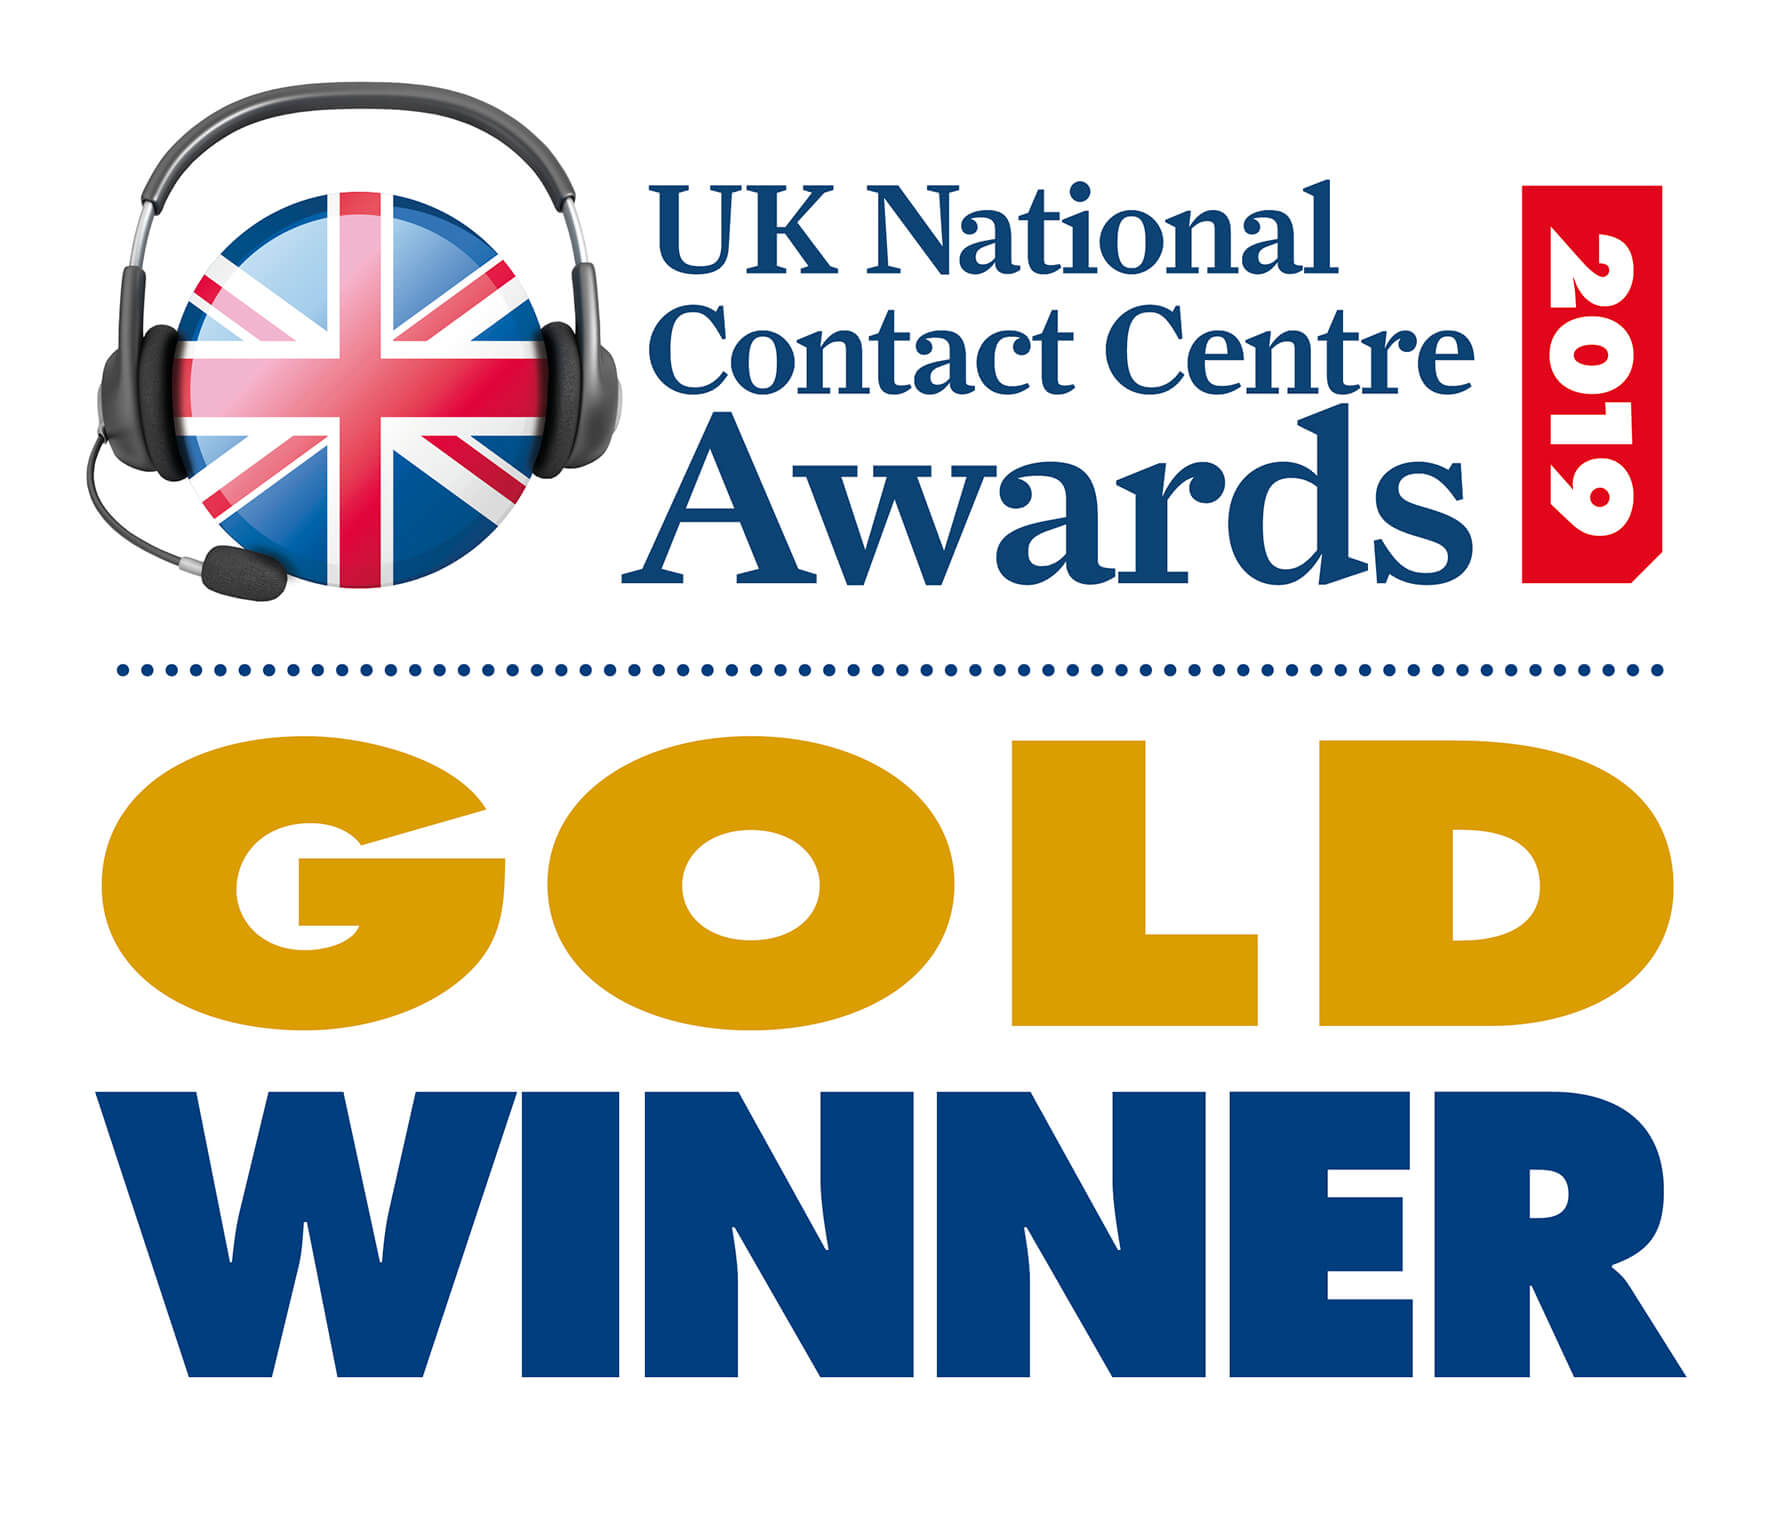 UK National Contact Centre Awards 2019 - Aegon Gold Winner